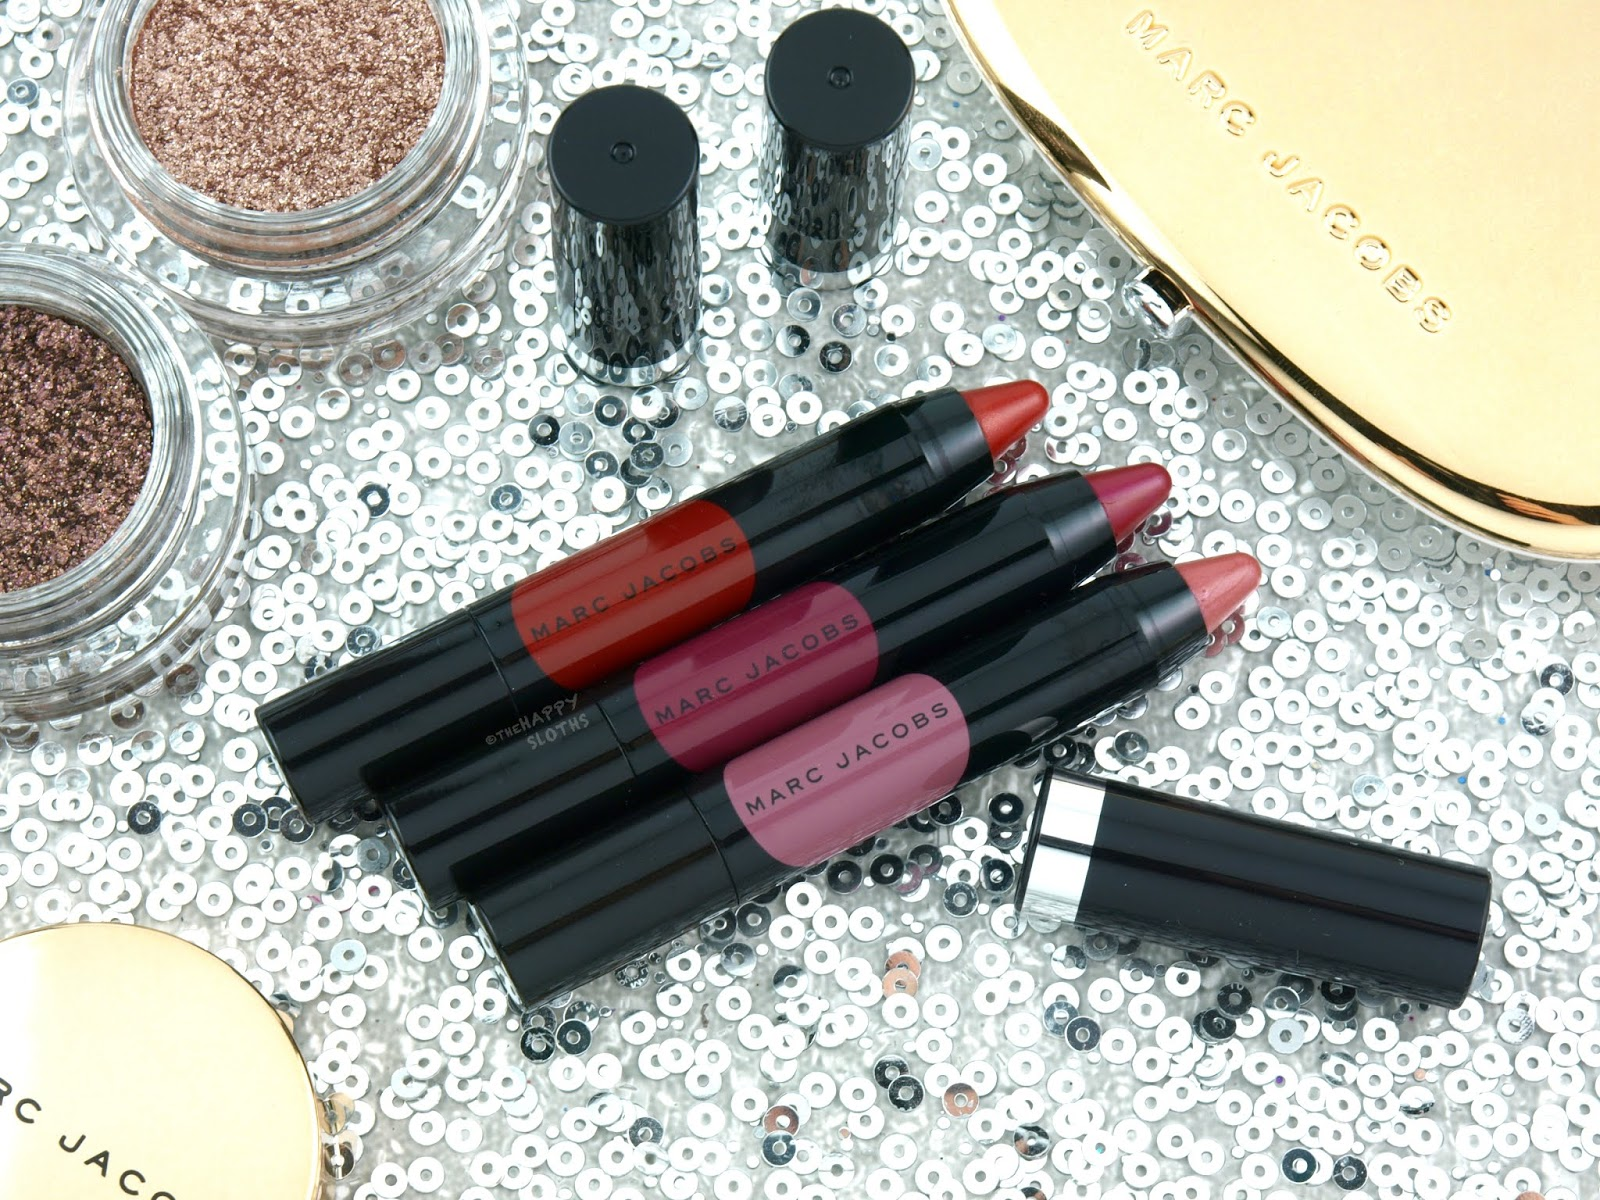 Marc Jacobs Holiday 2018 | On The Dot Mini Le Marc Liquid Lip Crayon Trio: Review and Swatches